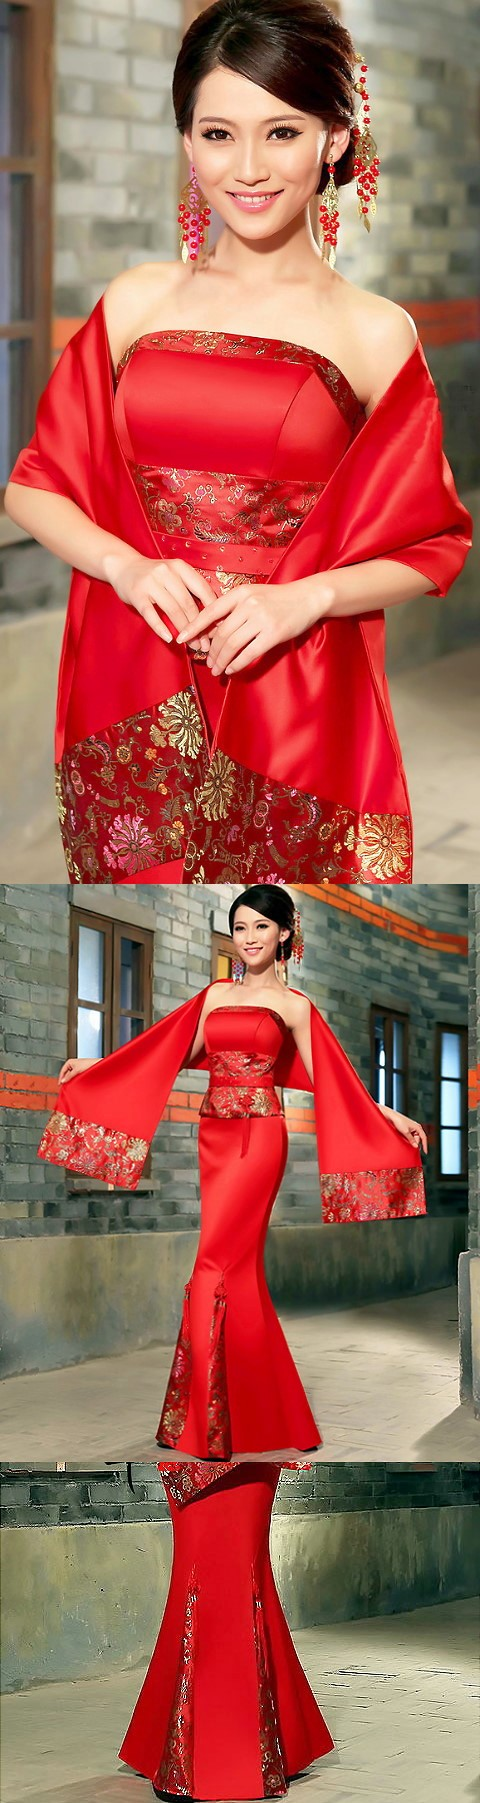 Bare Shoulders Fishtail Cheongsam w/ Scarf (CM)